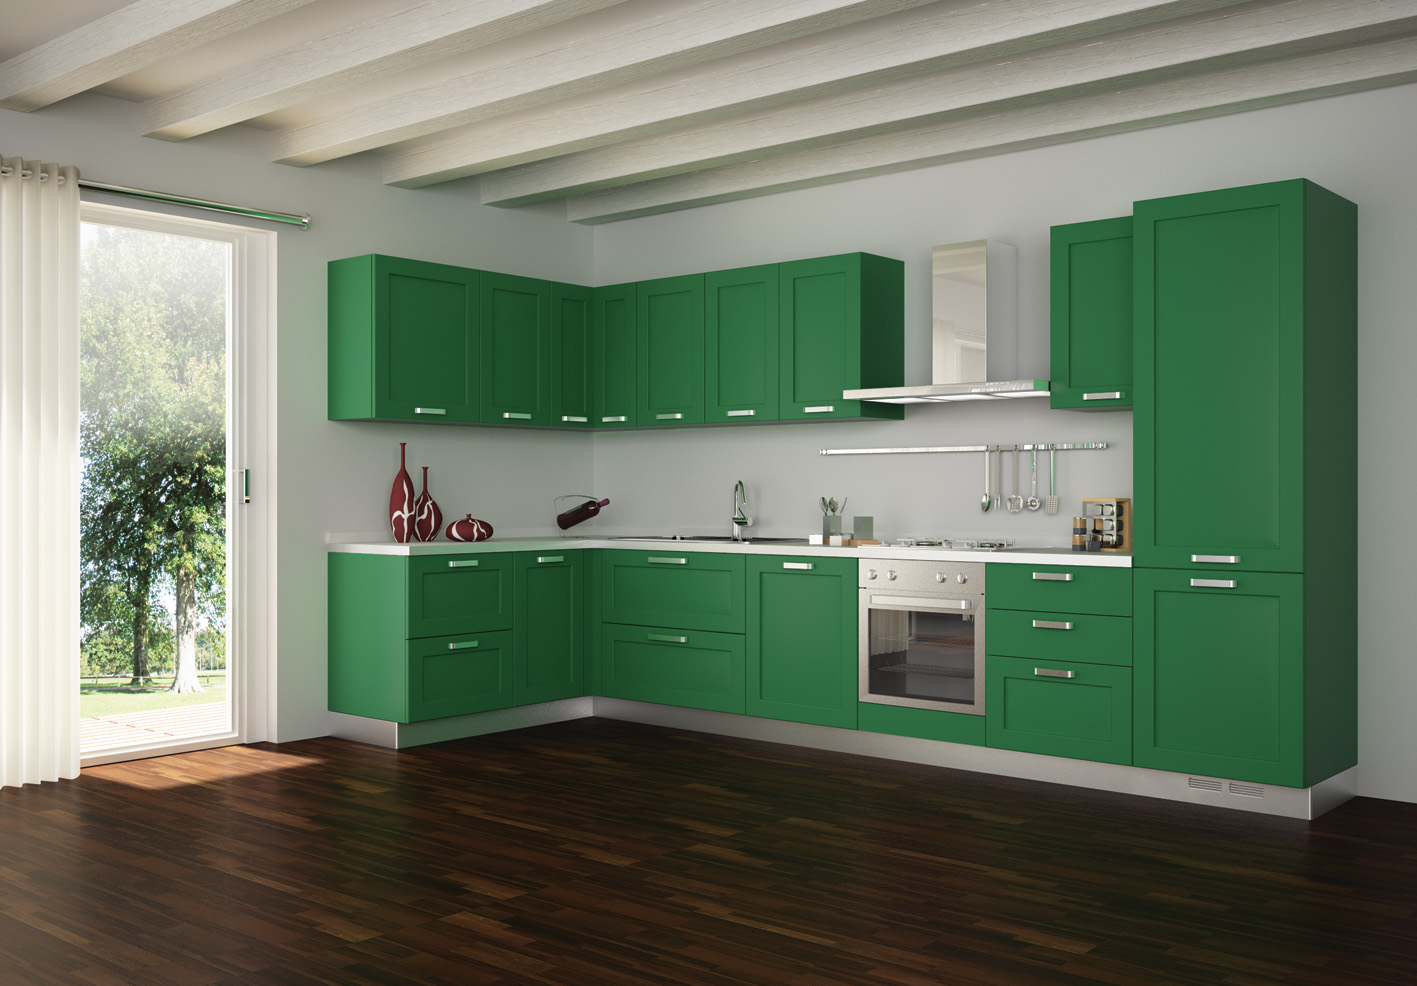 Kitchen Designs Modern Colors 30 Modern Kitchen Design Ideas